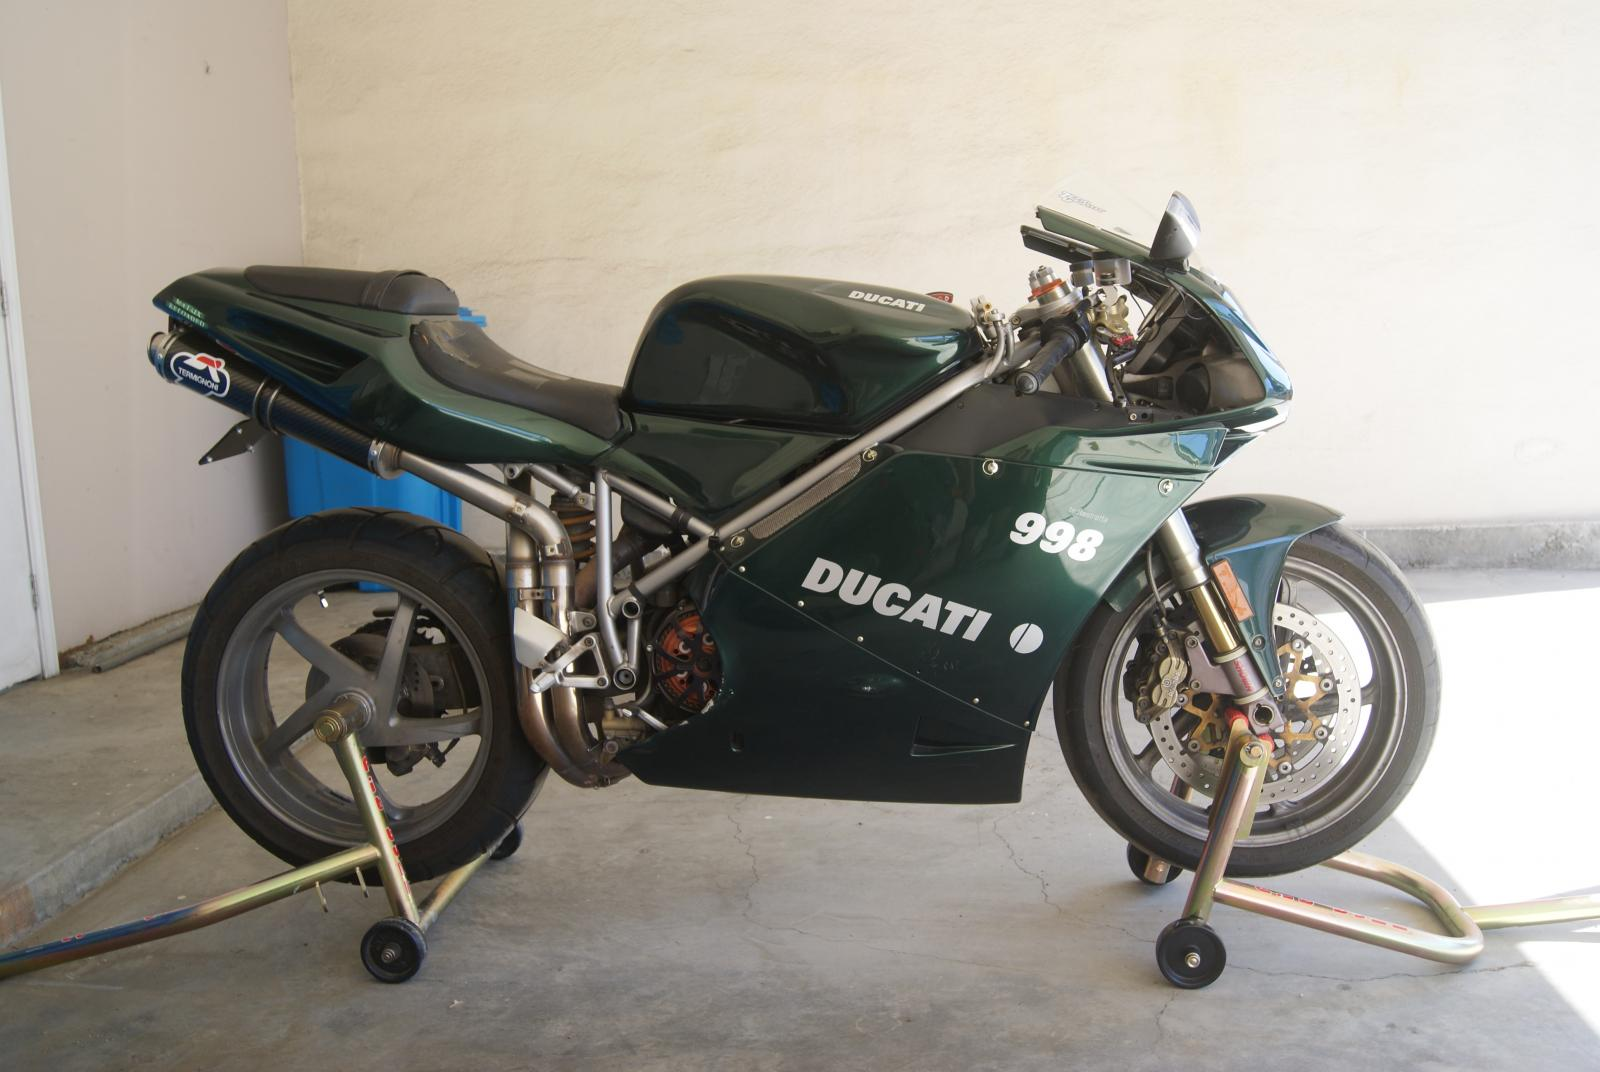 This beast was my main goal to recover. 04 Ducati 998.